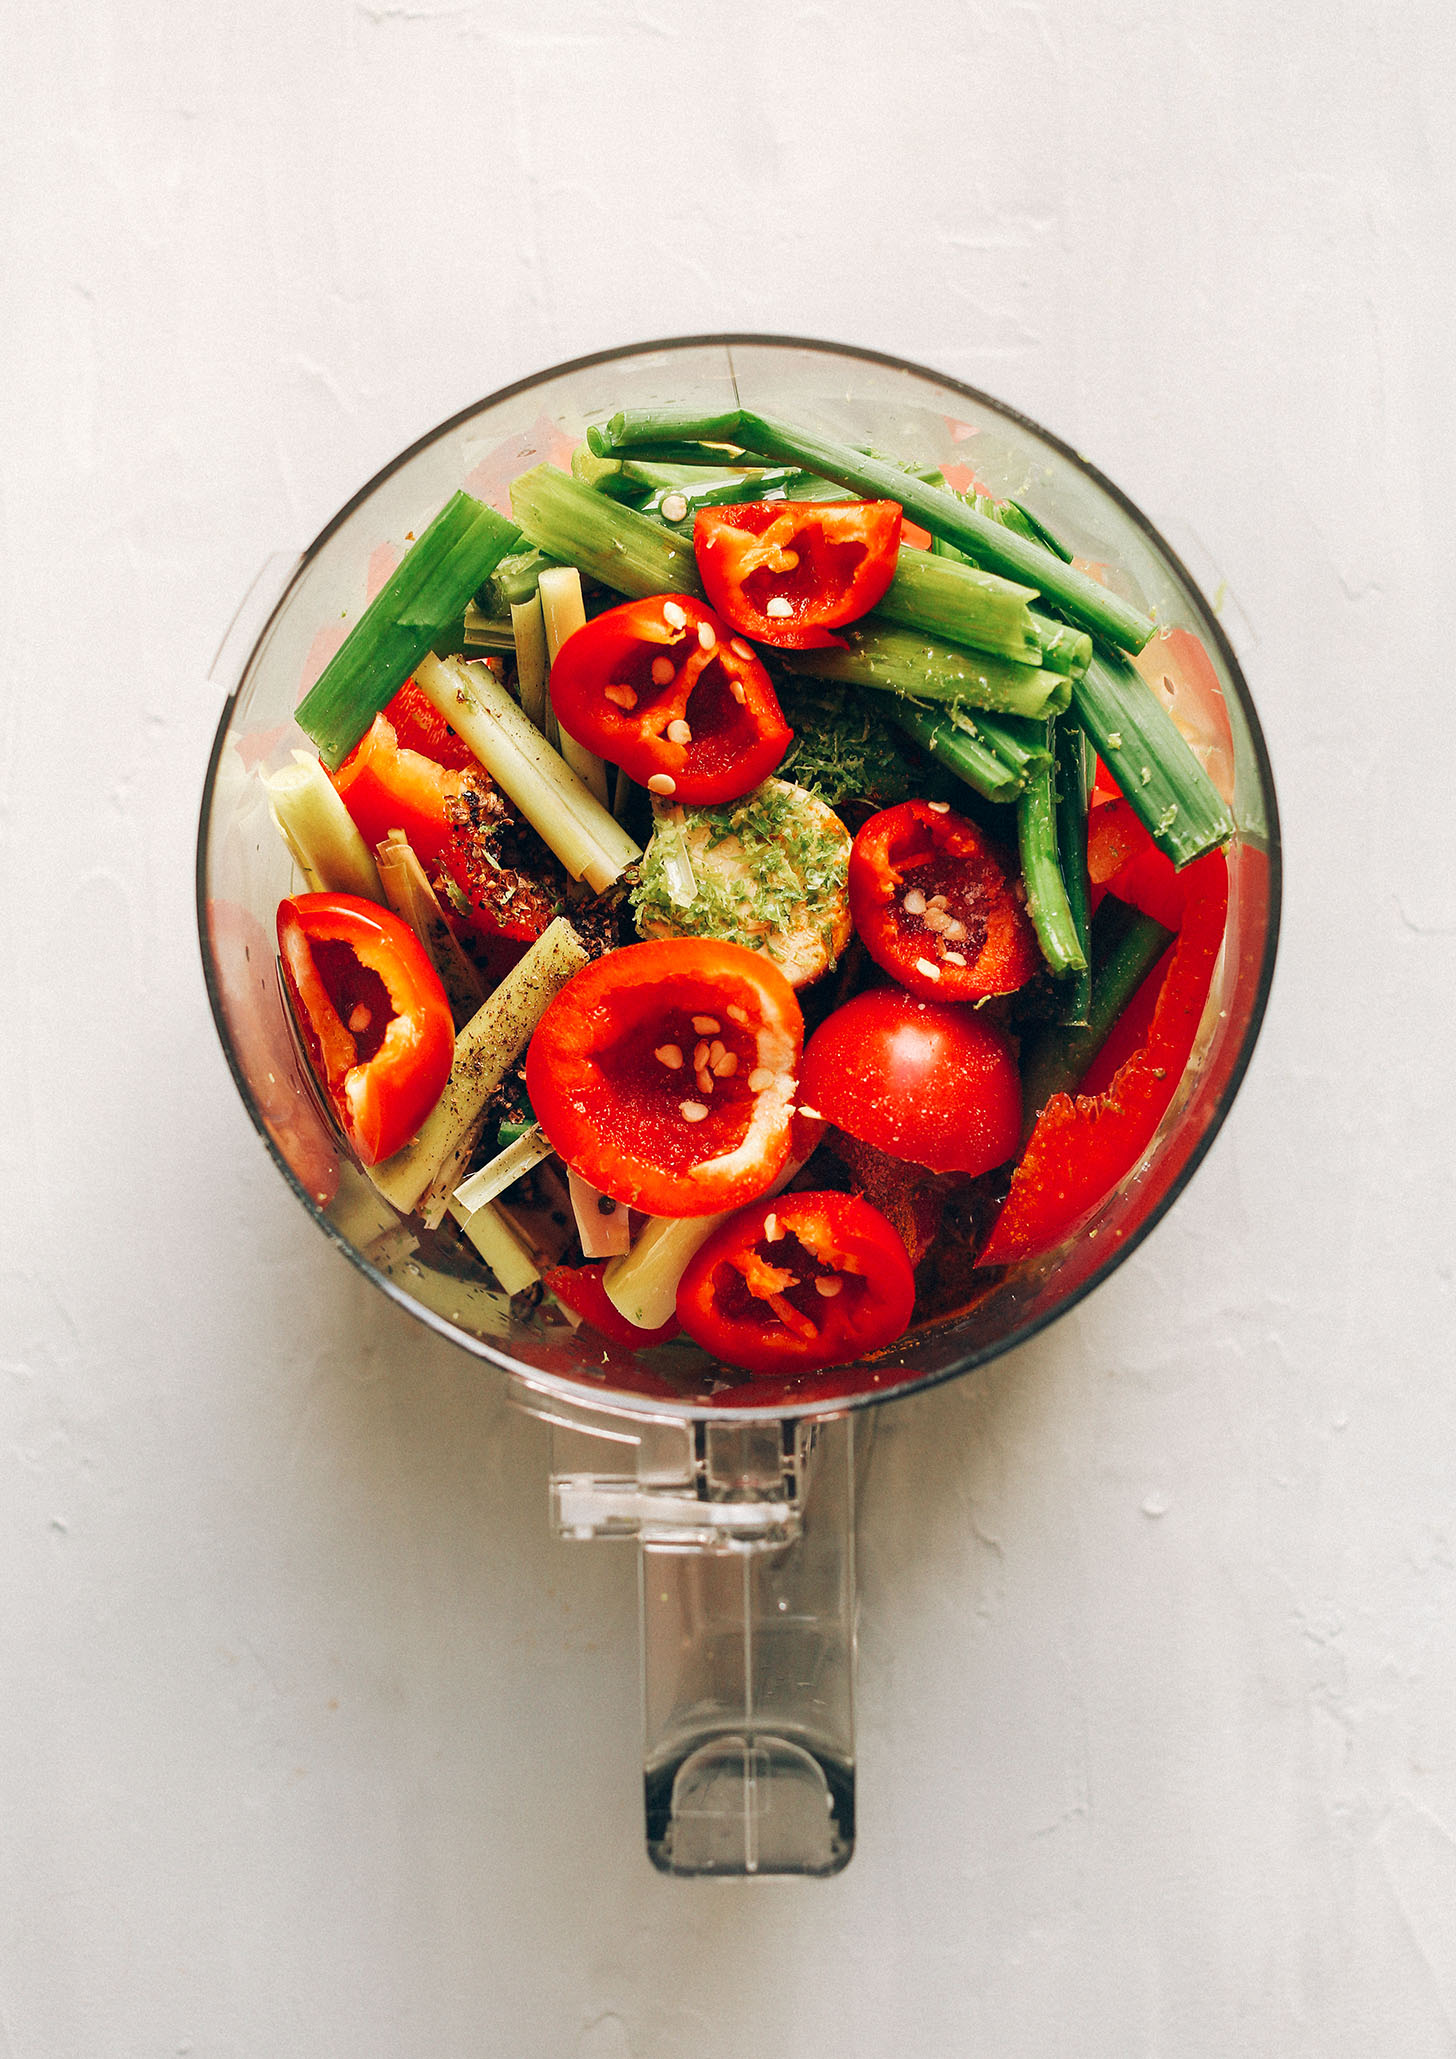 Food processor filled with ingredients for our gluten-free vegan Red Curry Paste recipe